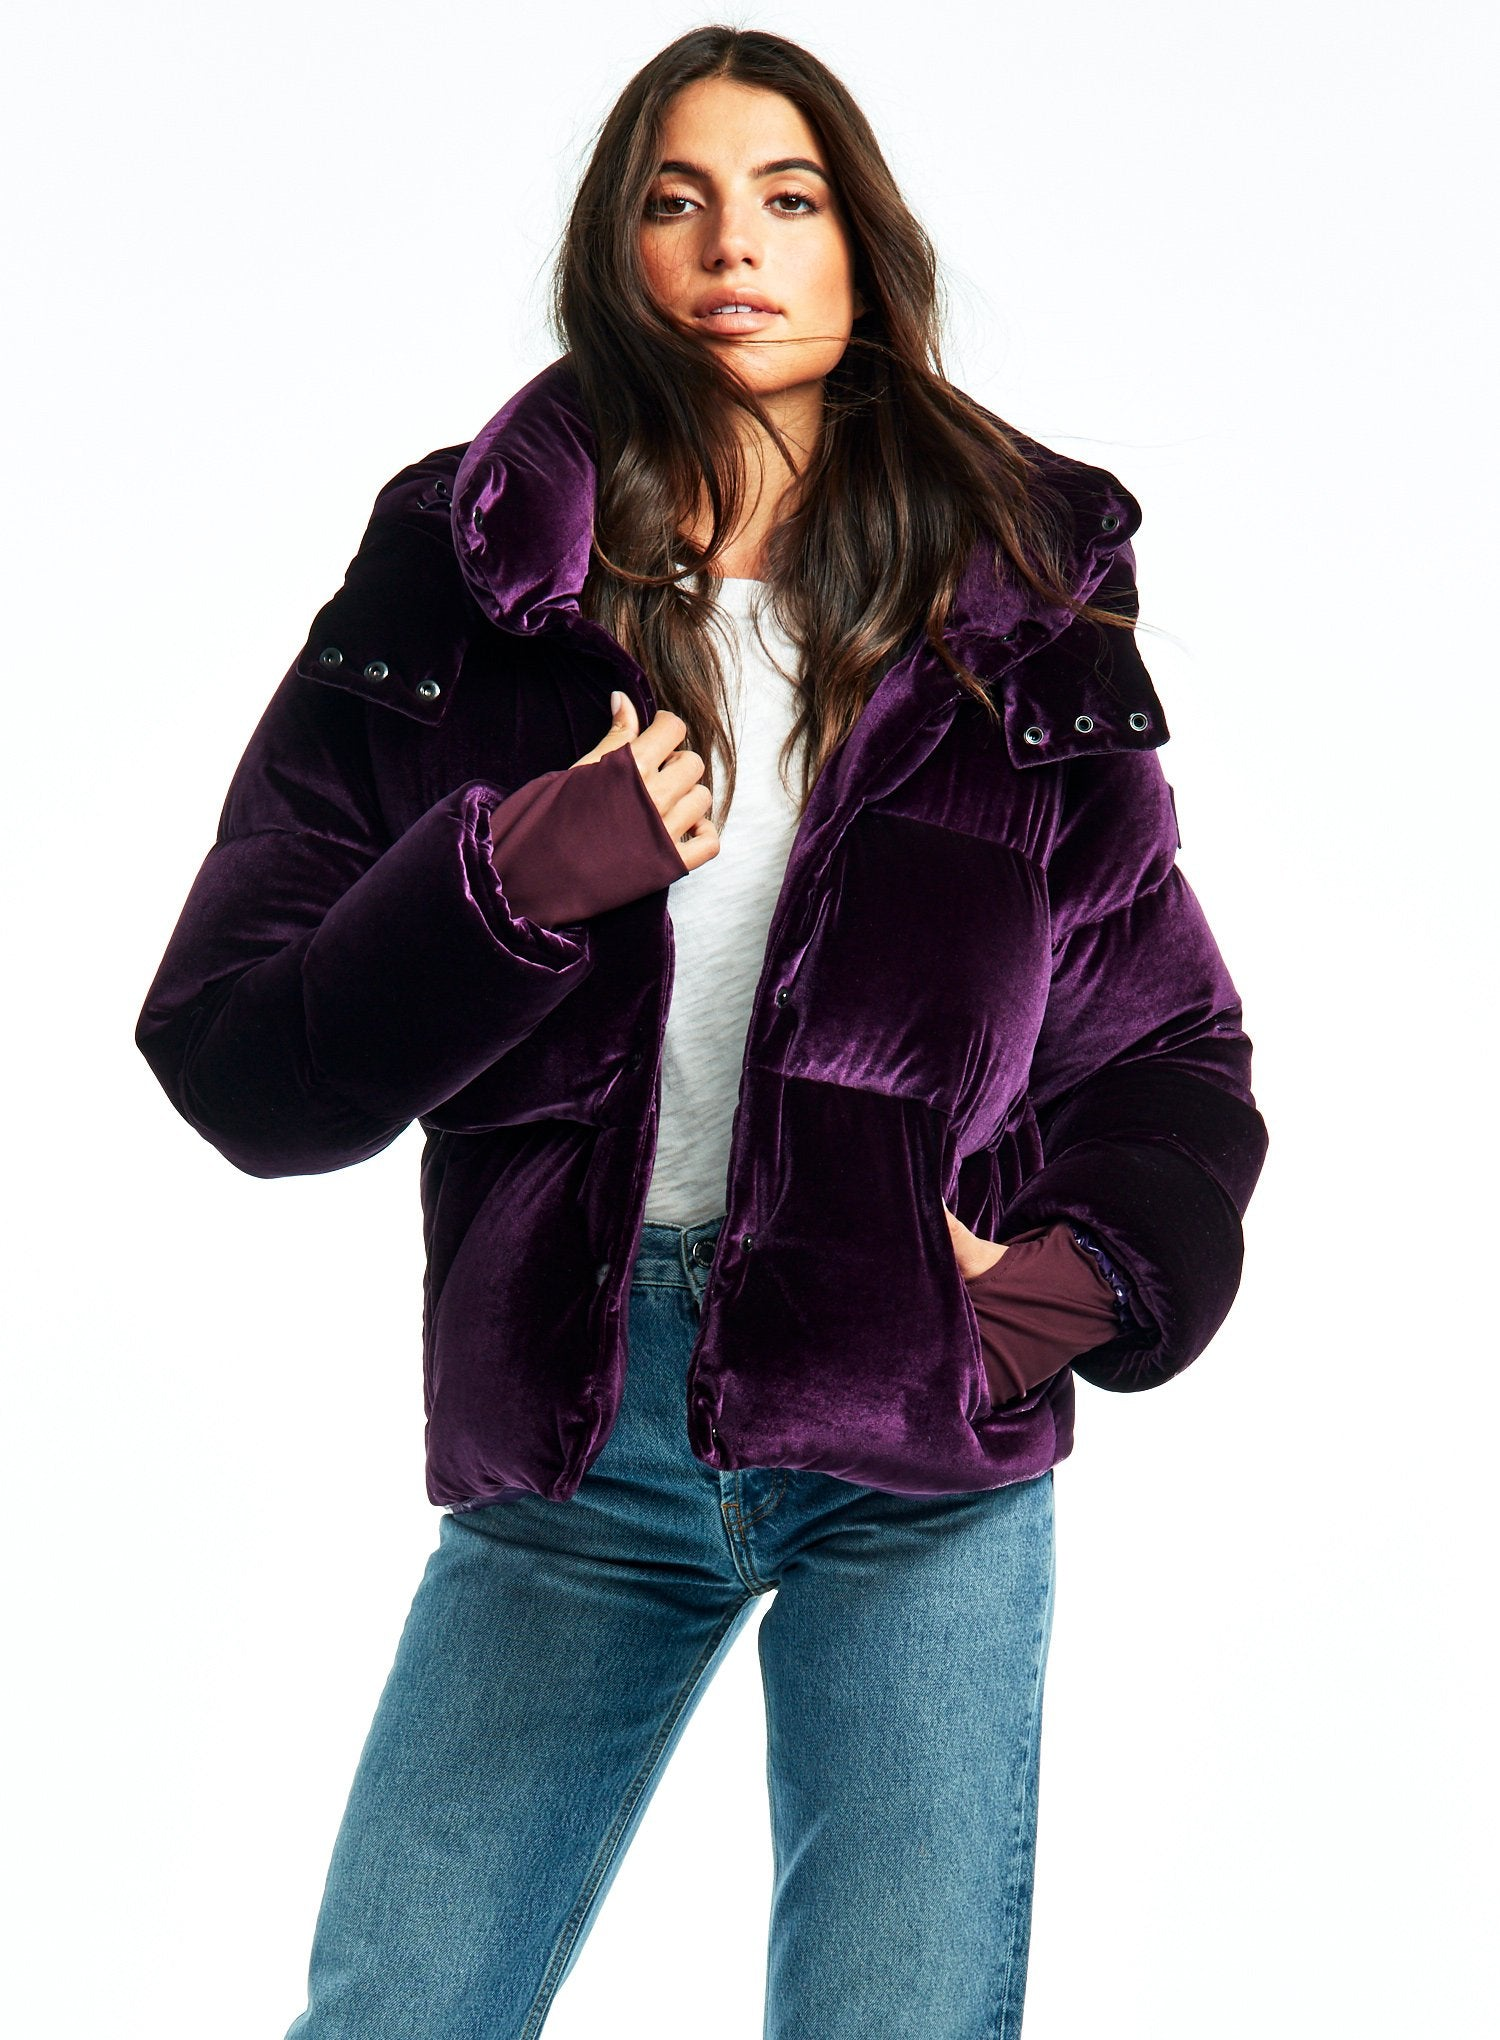 VELVET SYDNEY VELVET SYDNEY - SAM. New York Sam nyc jacket